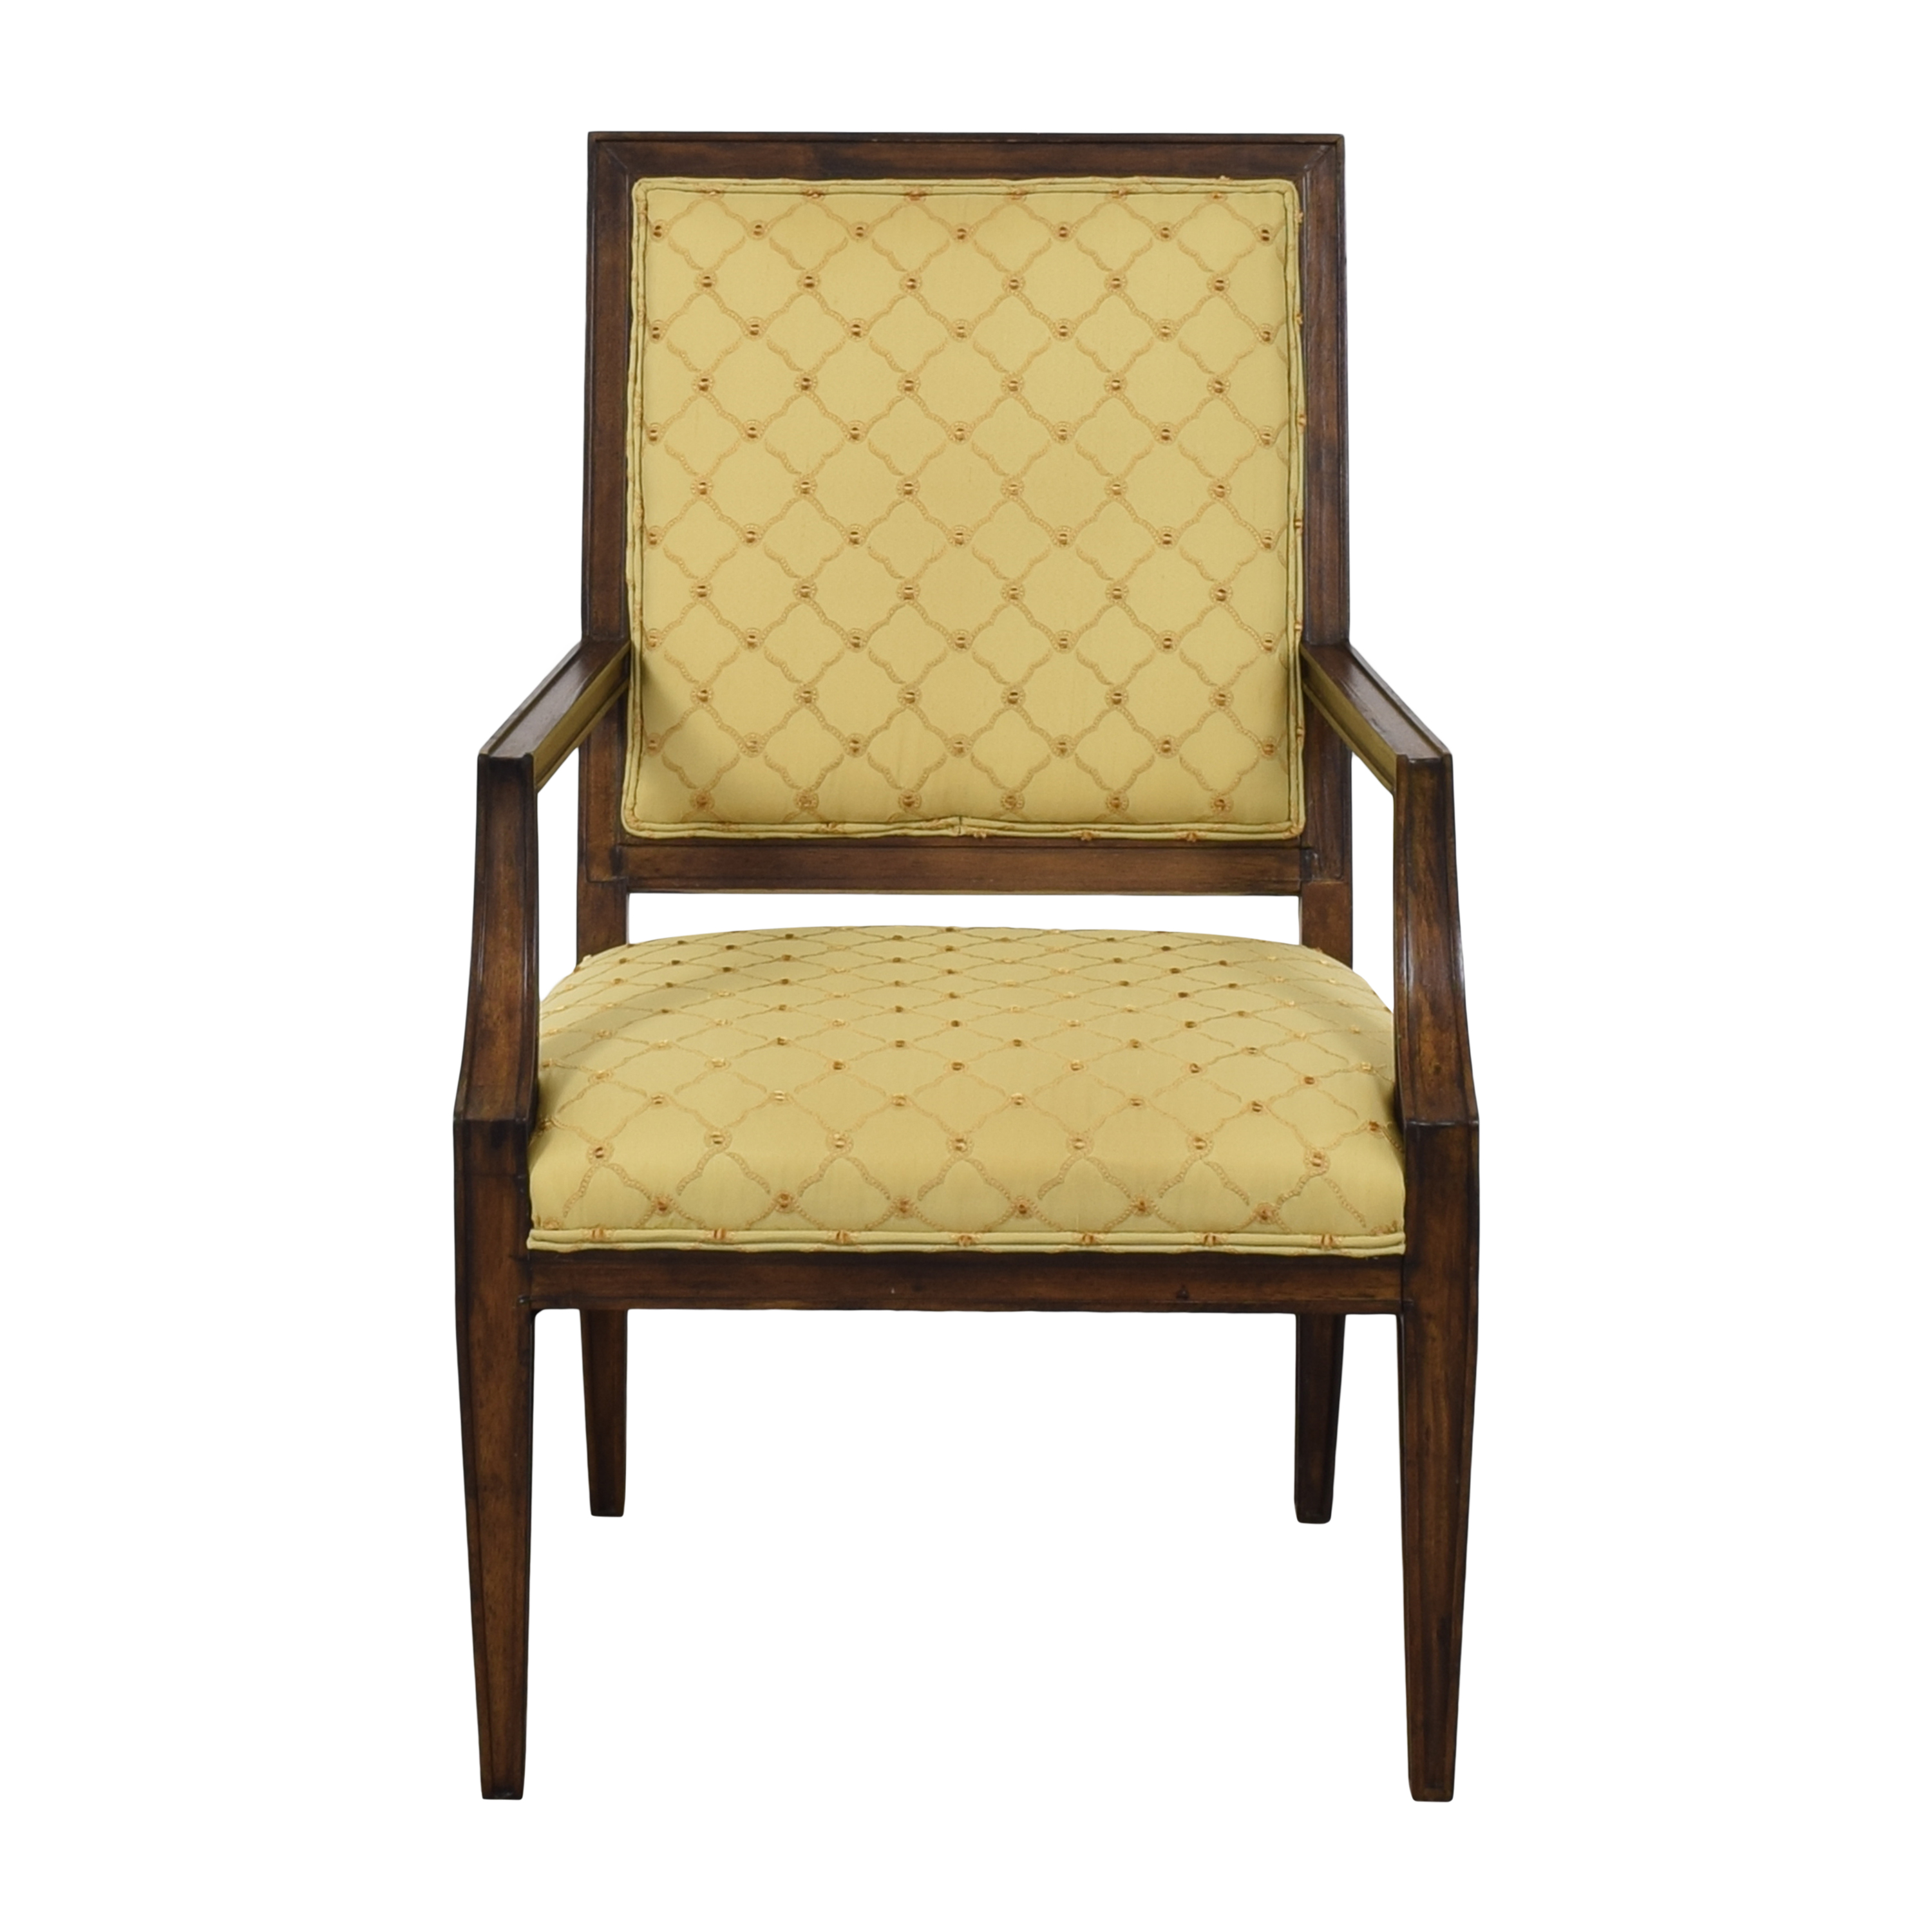 Vintage French-Style Square Back Arm Chair  price